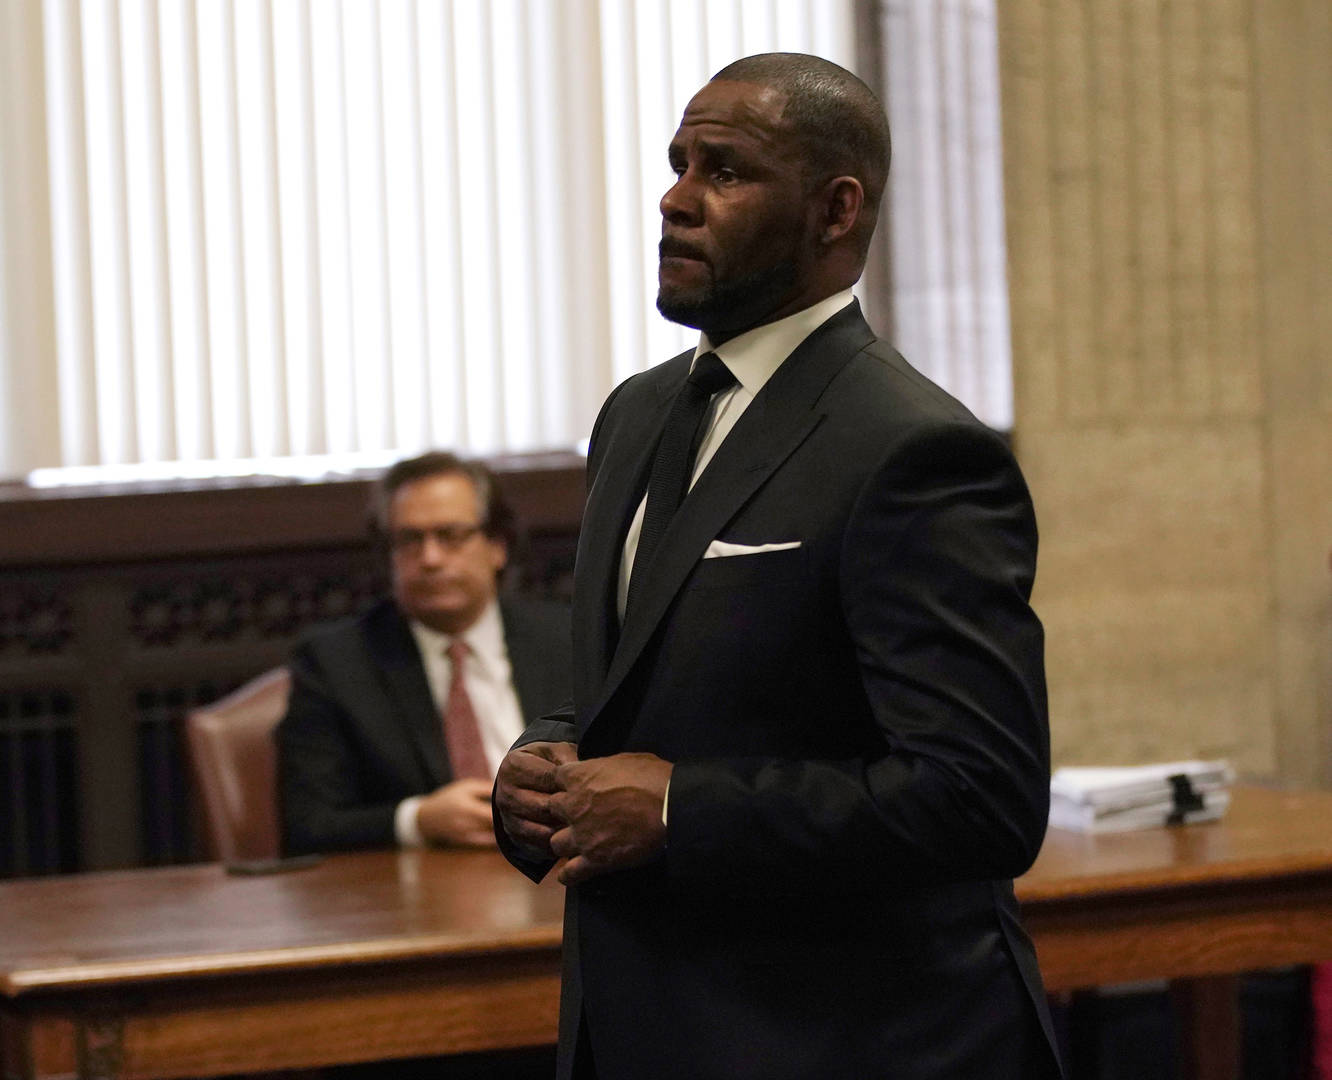 R. Kelly's Lawyer Says He's Payed Up His Child Support Dues In Full